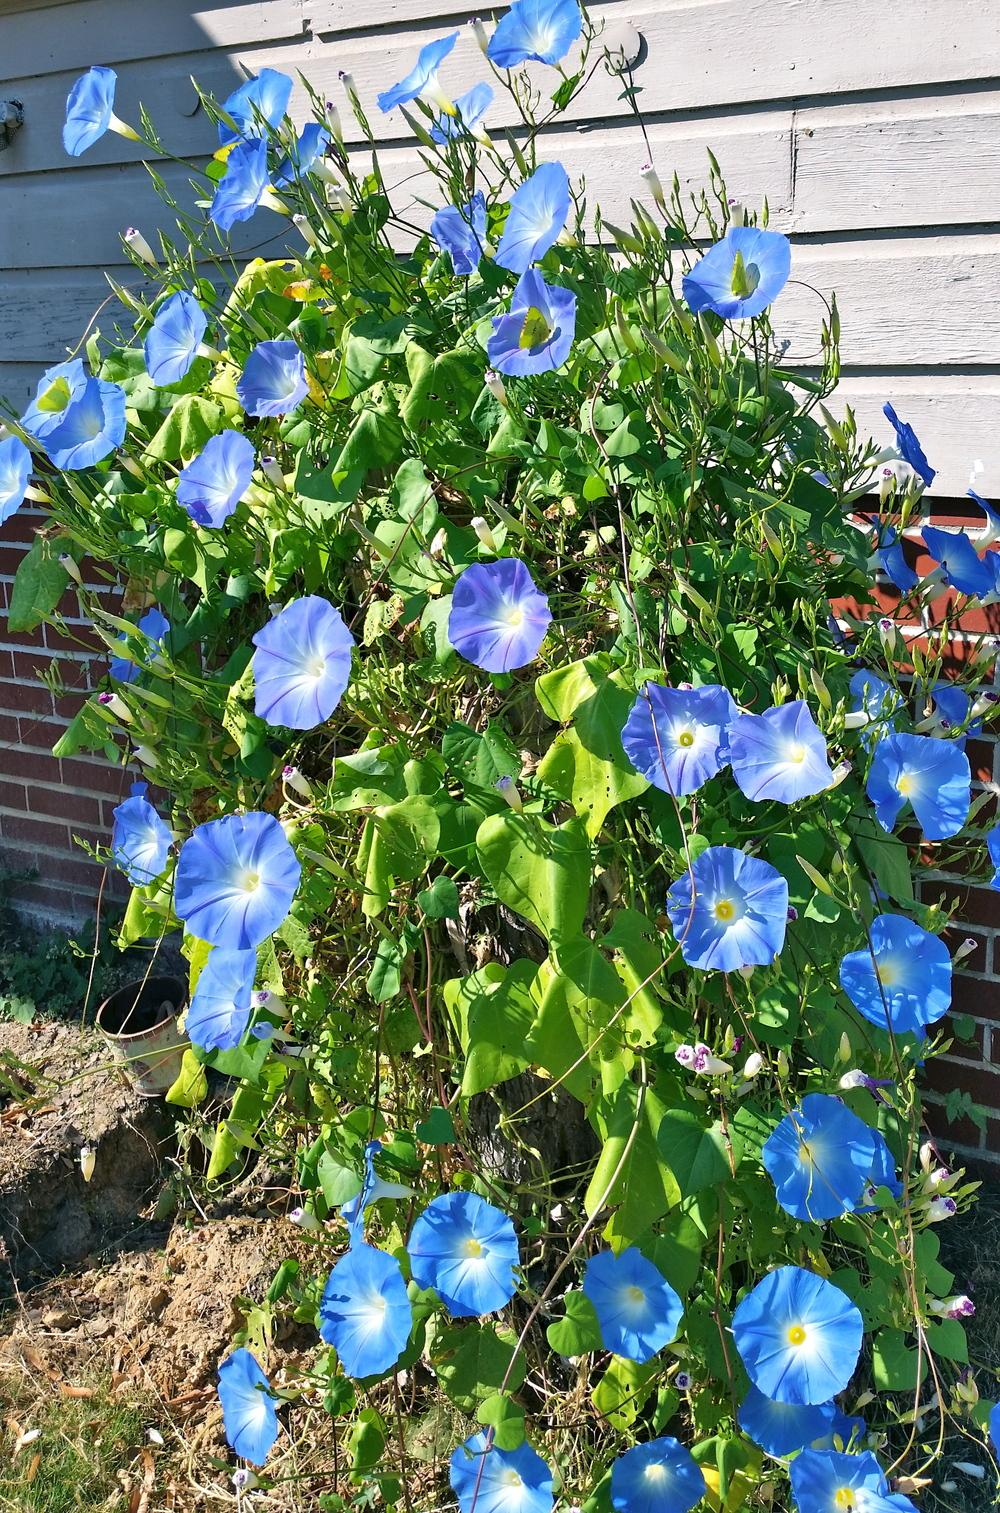 Sterling Seed Trading Heavenly Blue Morning Glory Heavenly Blue Morning Glory Heavenly Blue Morning Glory Seeds Amazon Thumb Plant houzz-03 Heavenly Blue Morning Glory